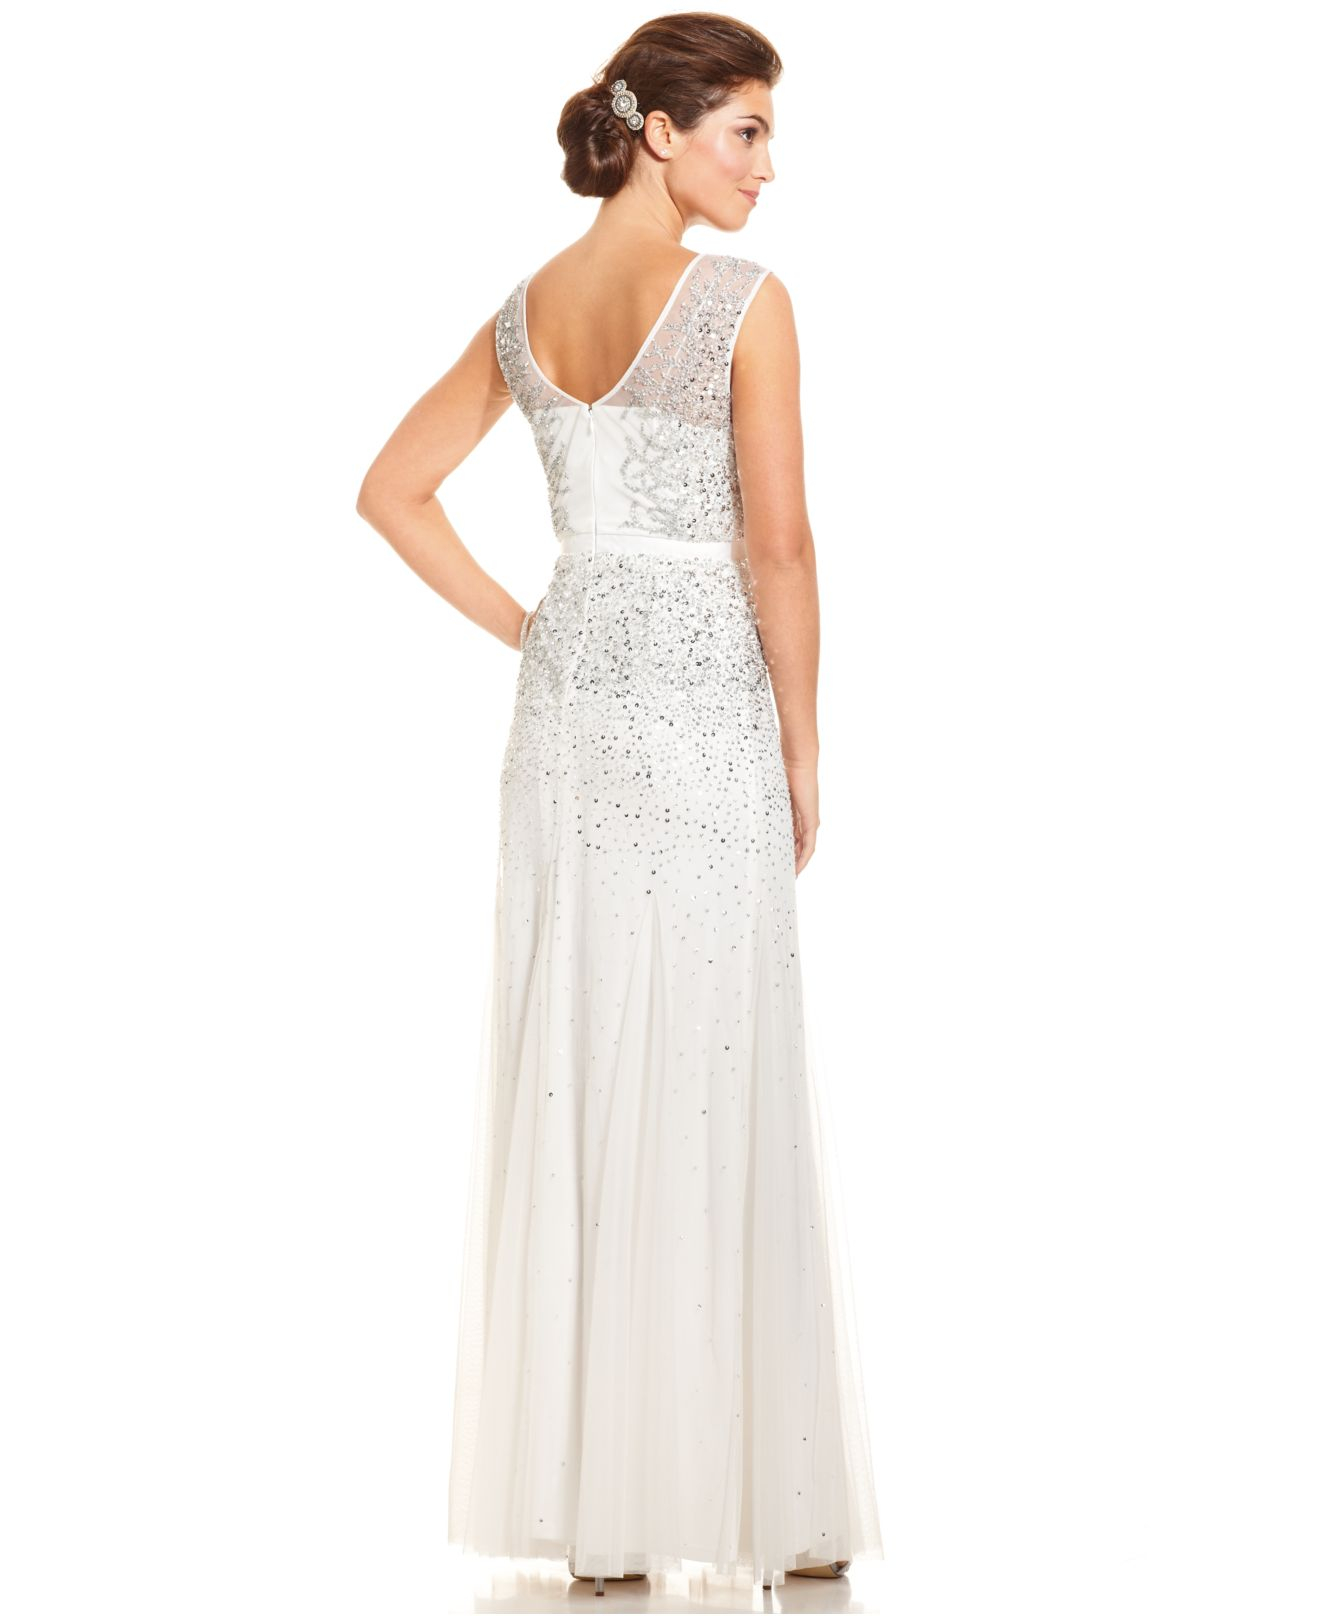 Lyst - Adrianna Papell Sleeveless Beaded Illusion Gown in White